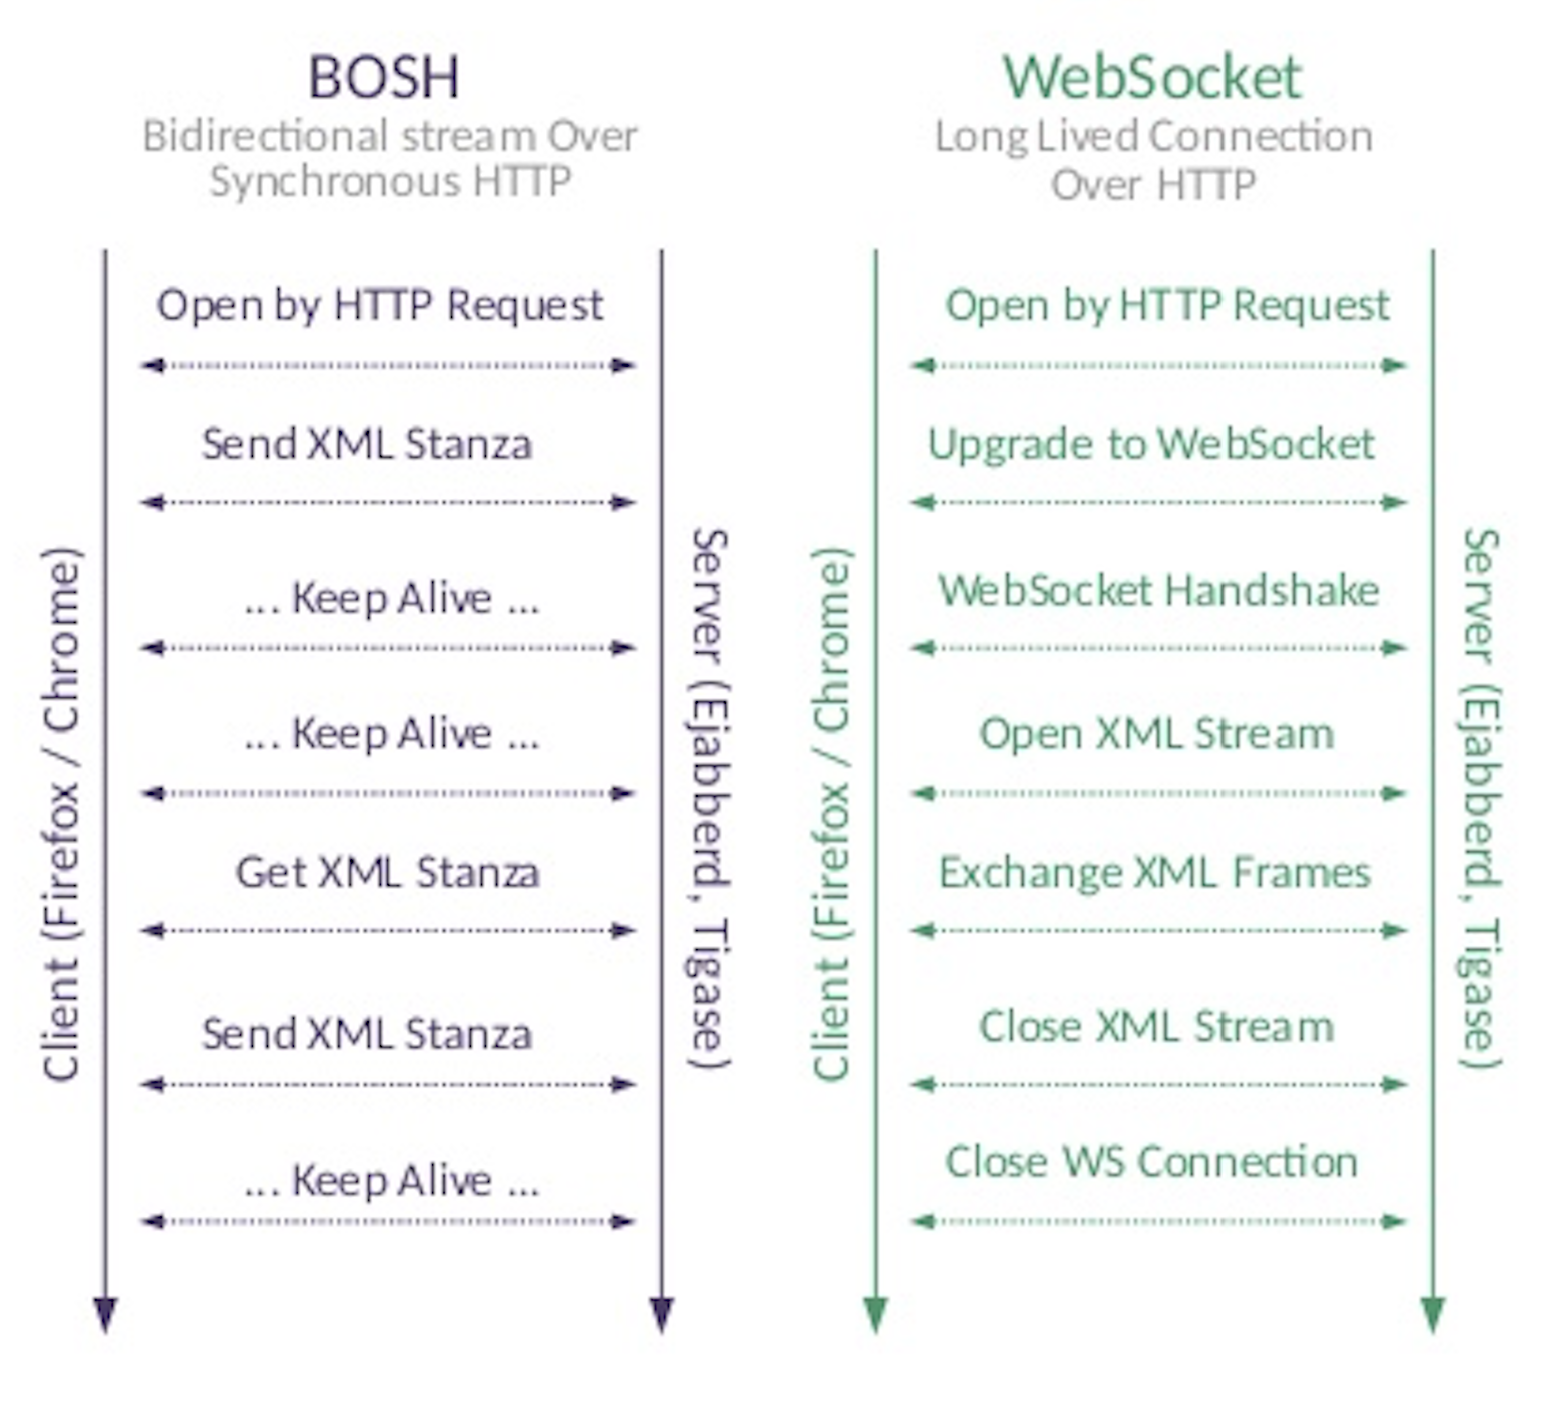 BOSH and WebSocket protocols